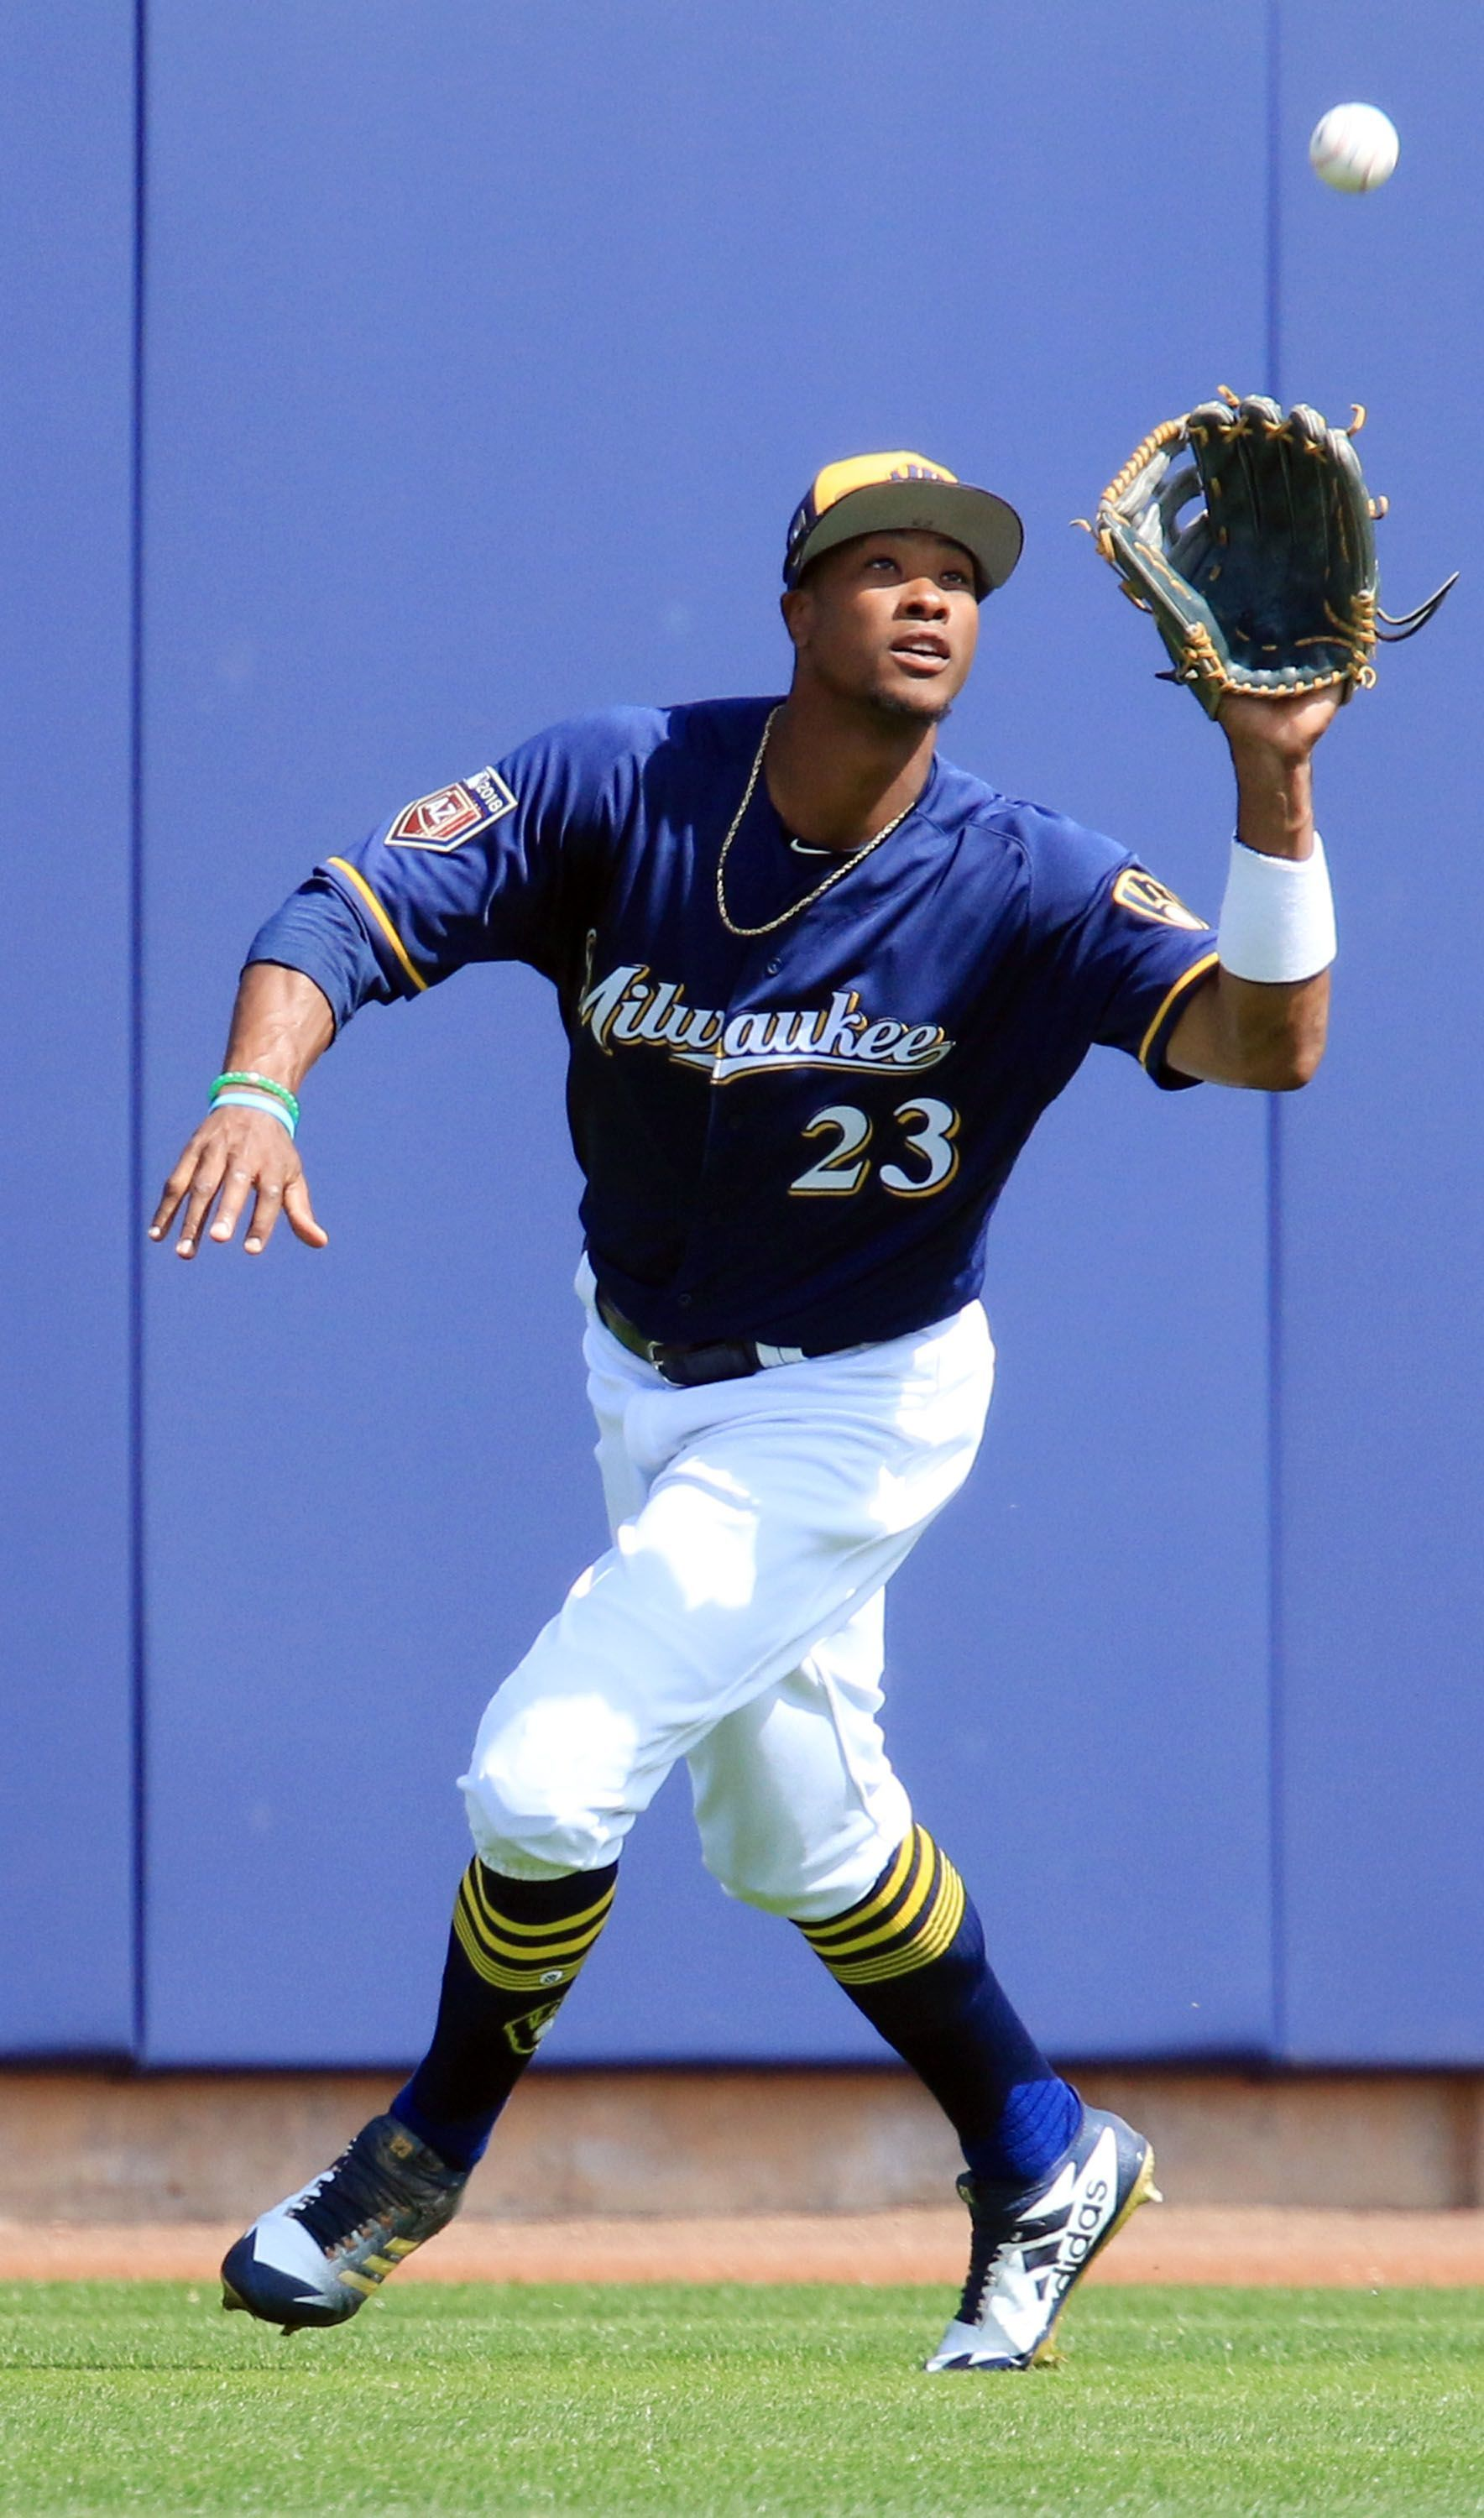 Milwaukee Brewers outfielder Keon Broxton is scheduled to play with the Timber Rattlers this week at Fox Cities Stadium.